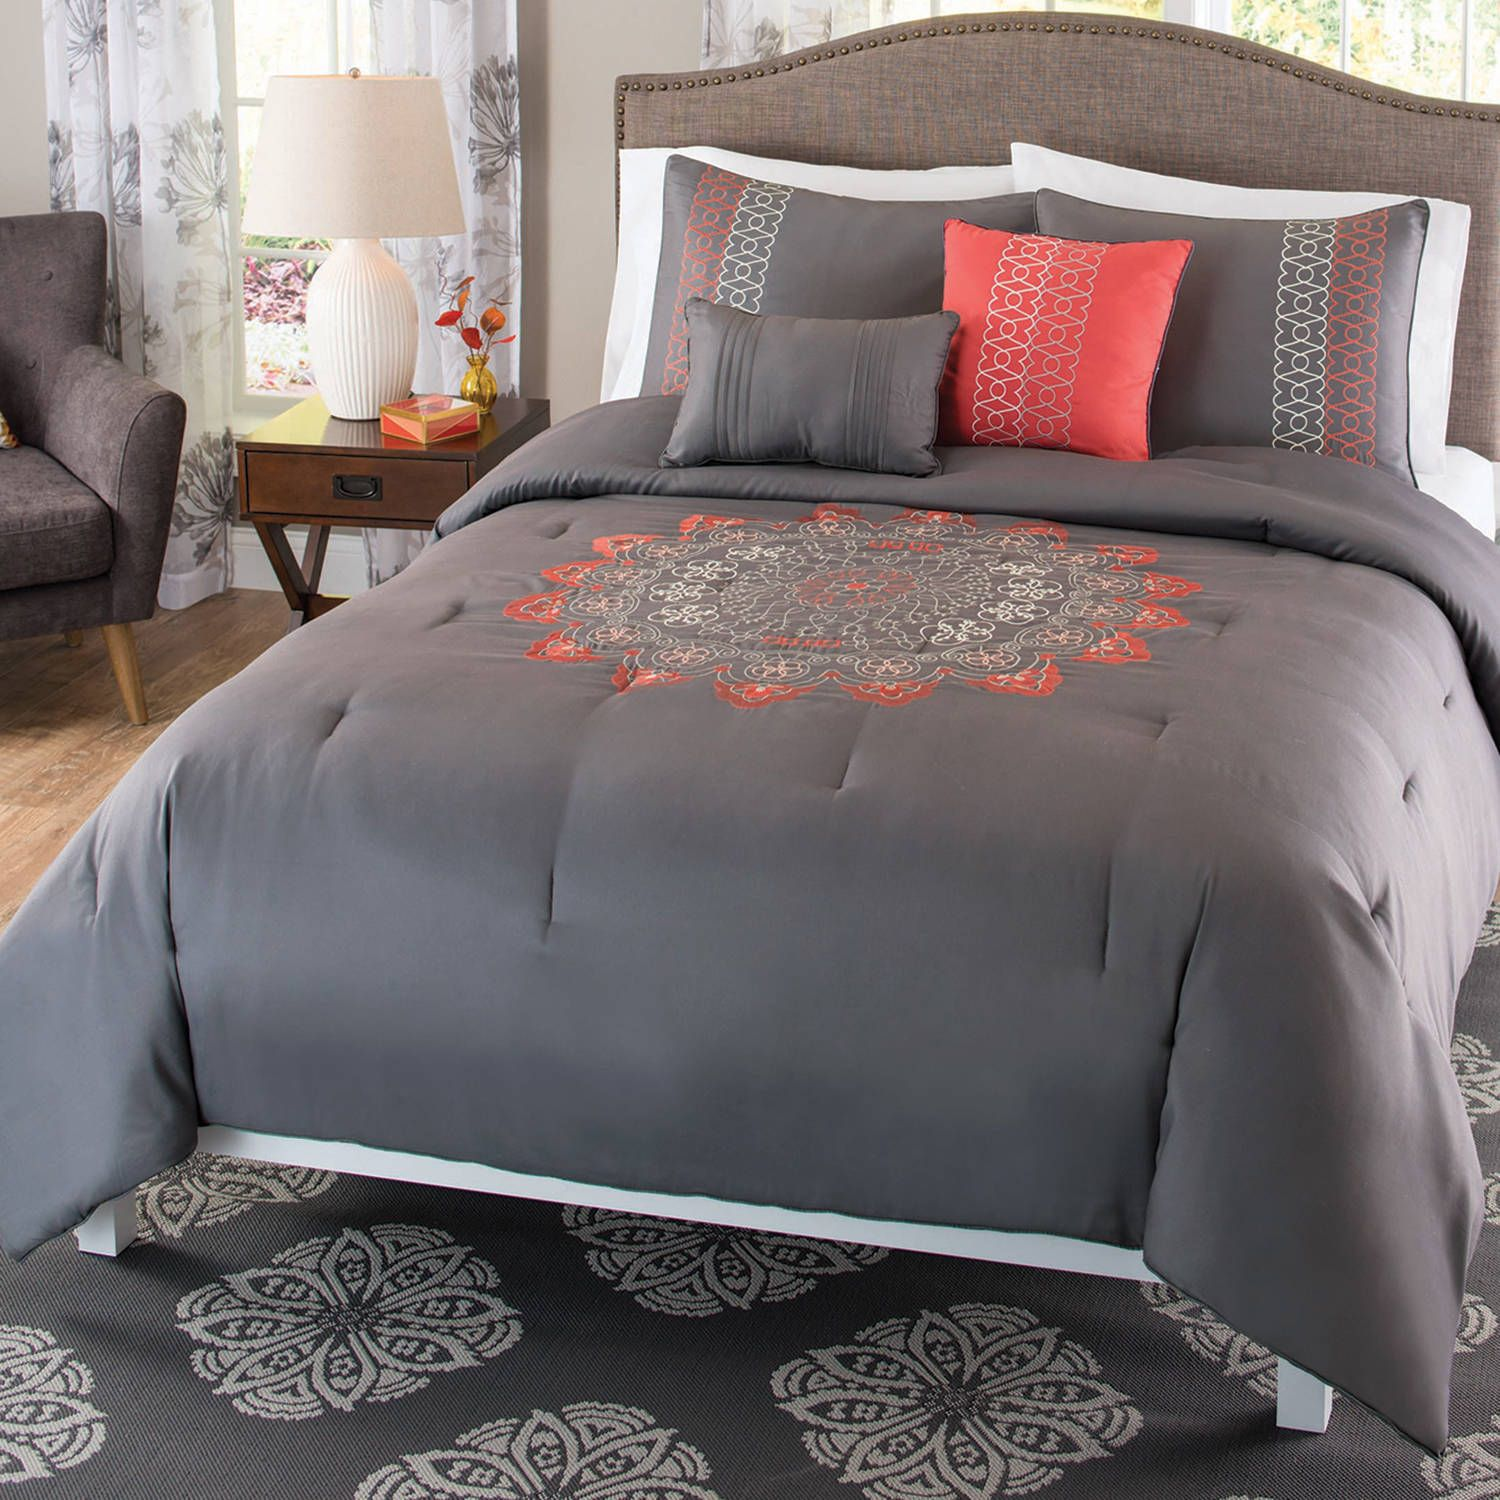 f1546413ef6de7e4f91b6c0ccb7e5c9a - Better Homes And Gardens Bedding And Curtains